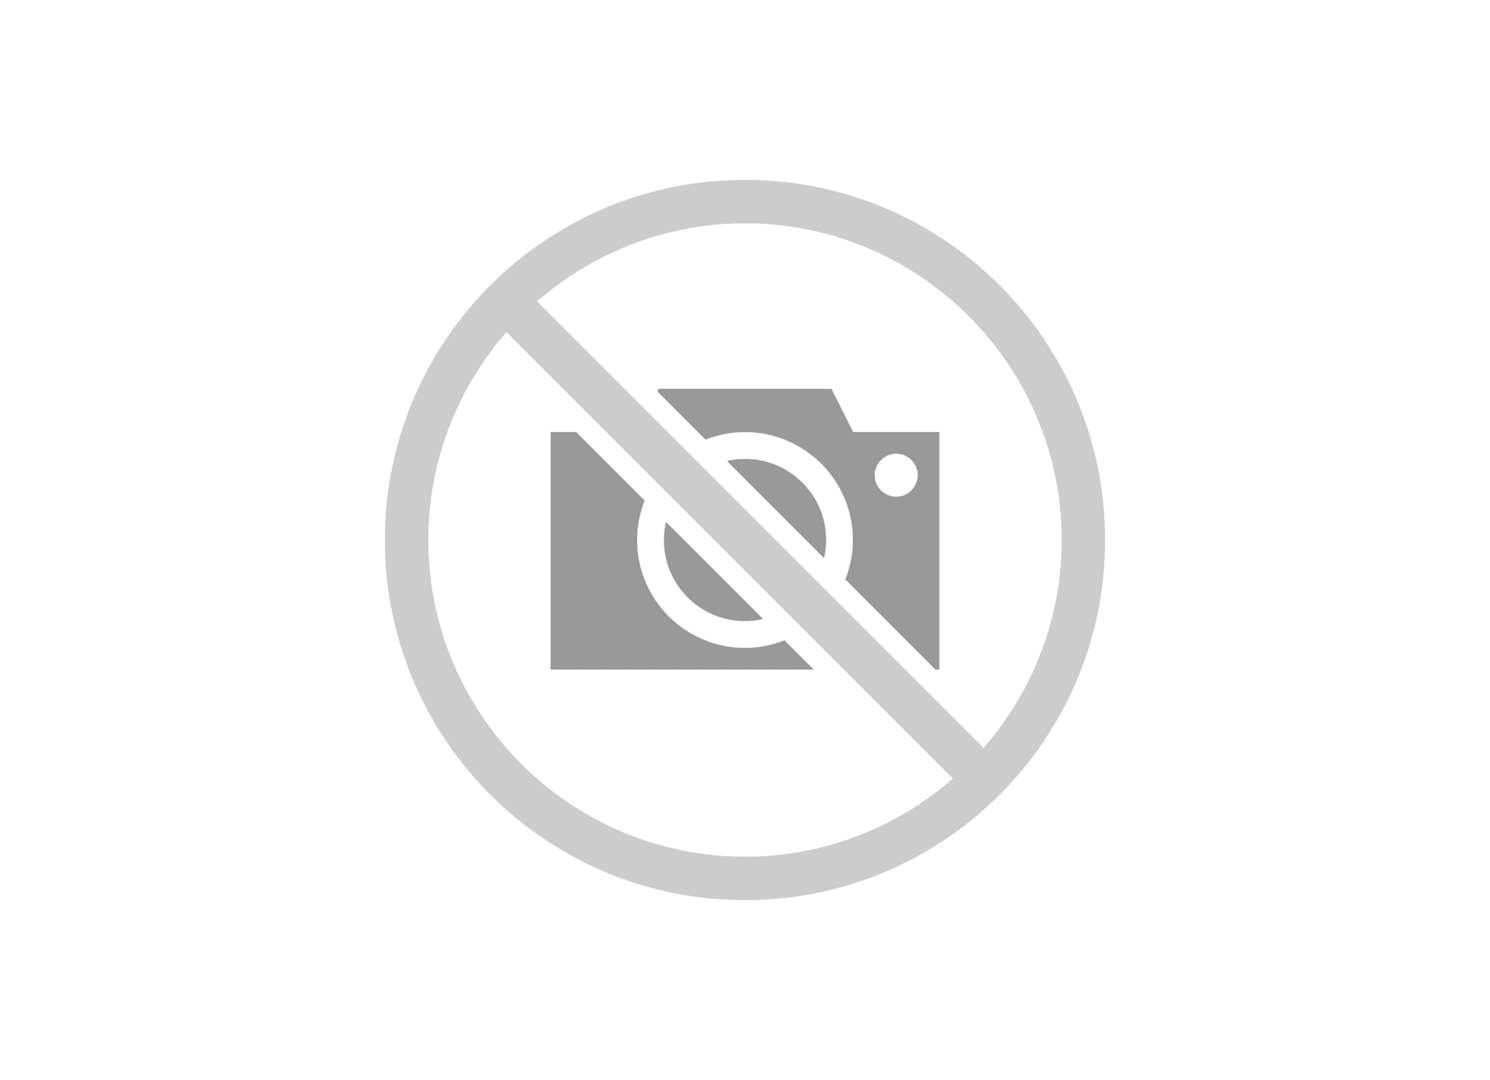 Frozen-balon playa 50 ø